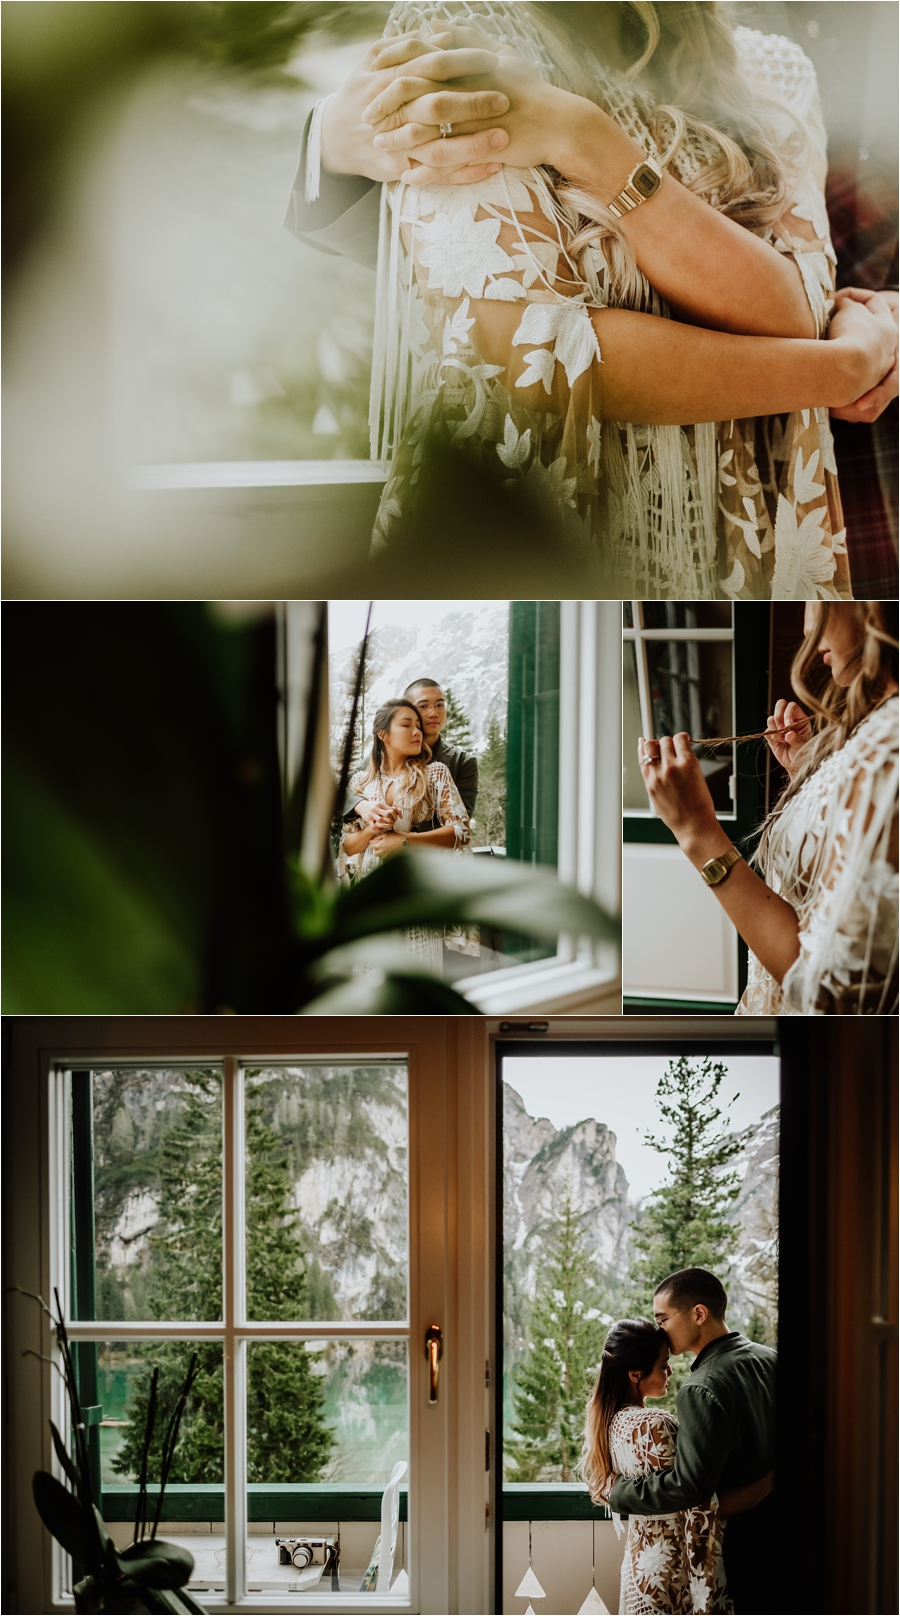 Hotel Pragser Wildsee Lago Di Braies Dolomites Pre_Wedding Engagement shoot by Wild Connections Photography